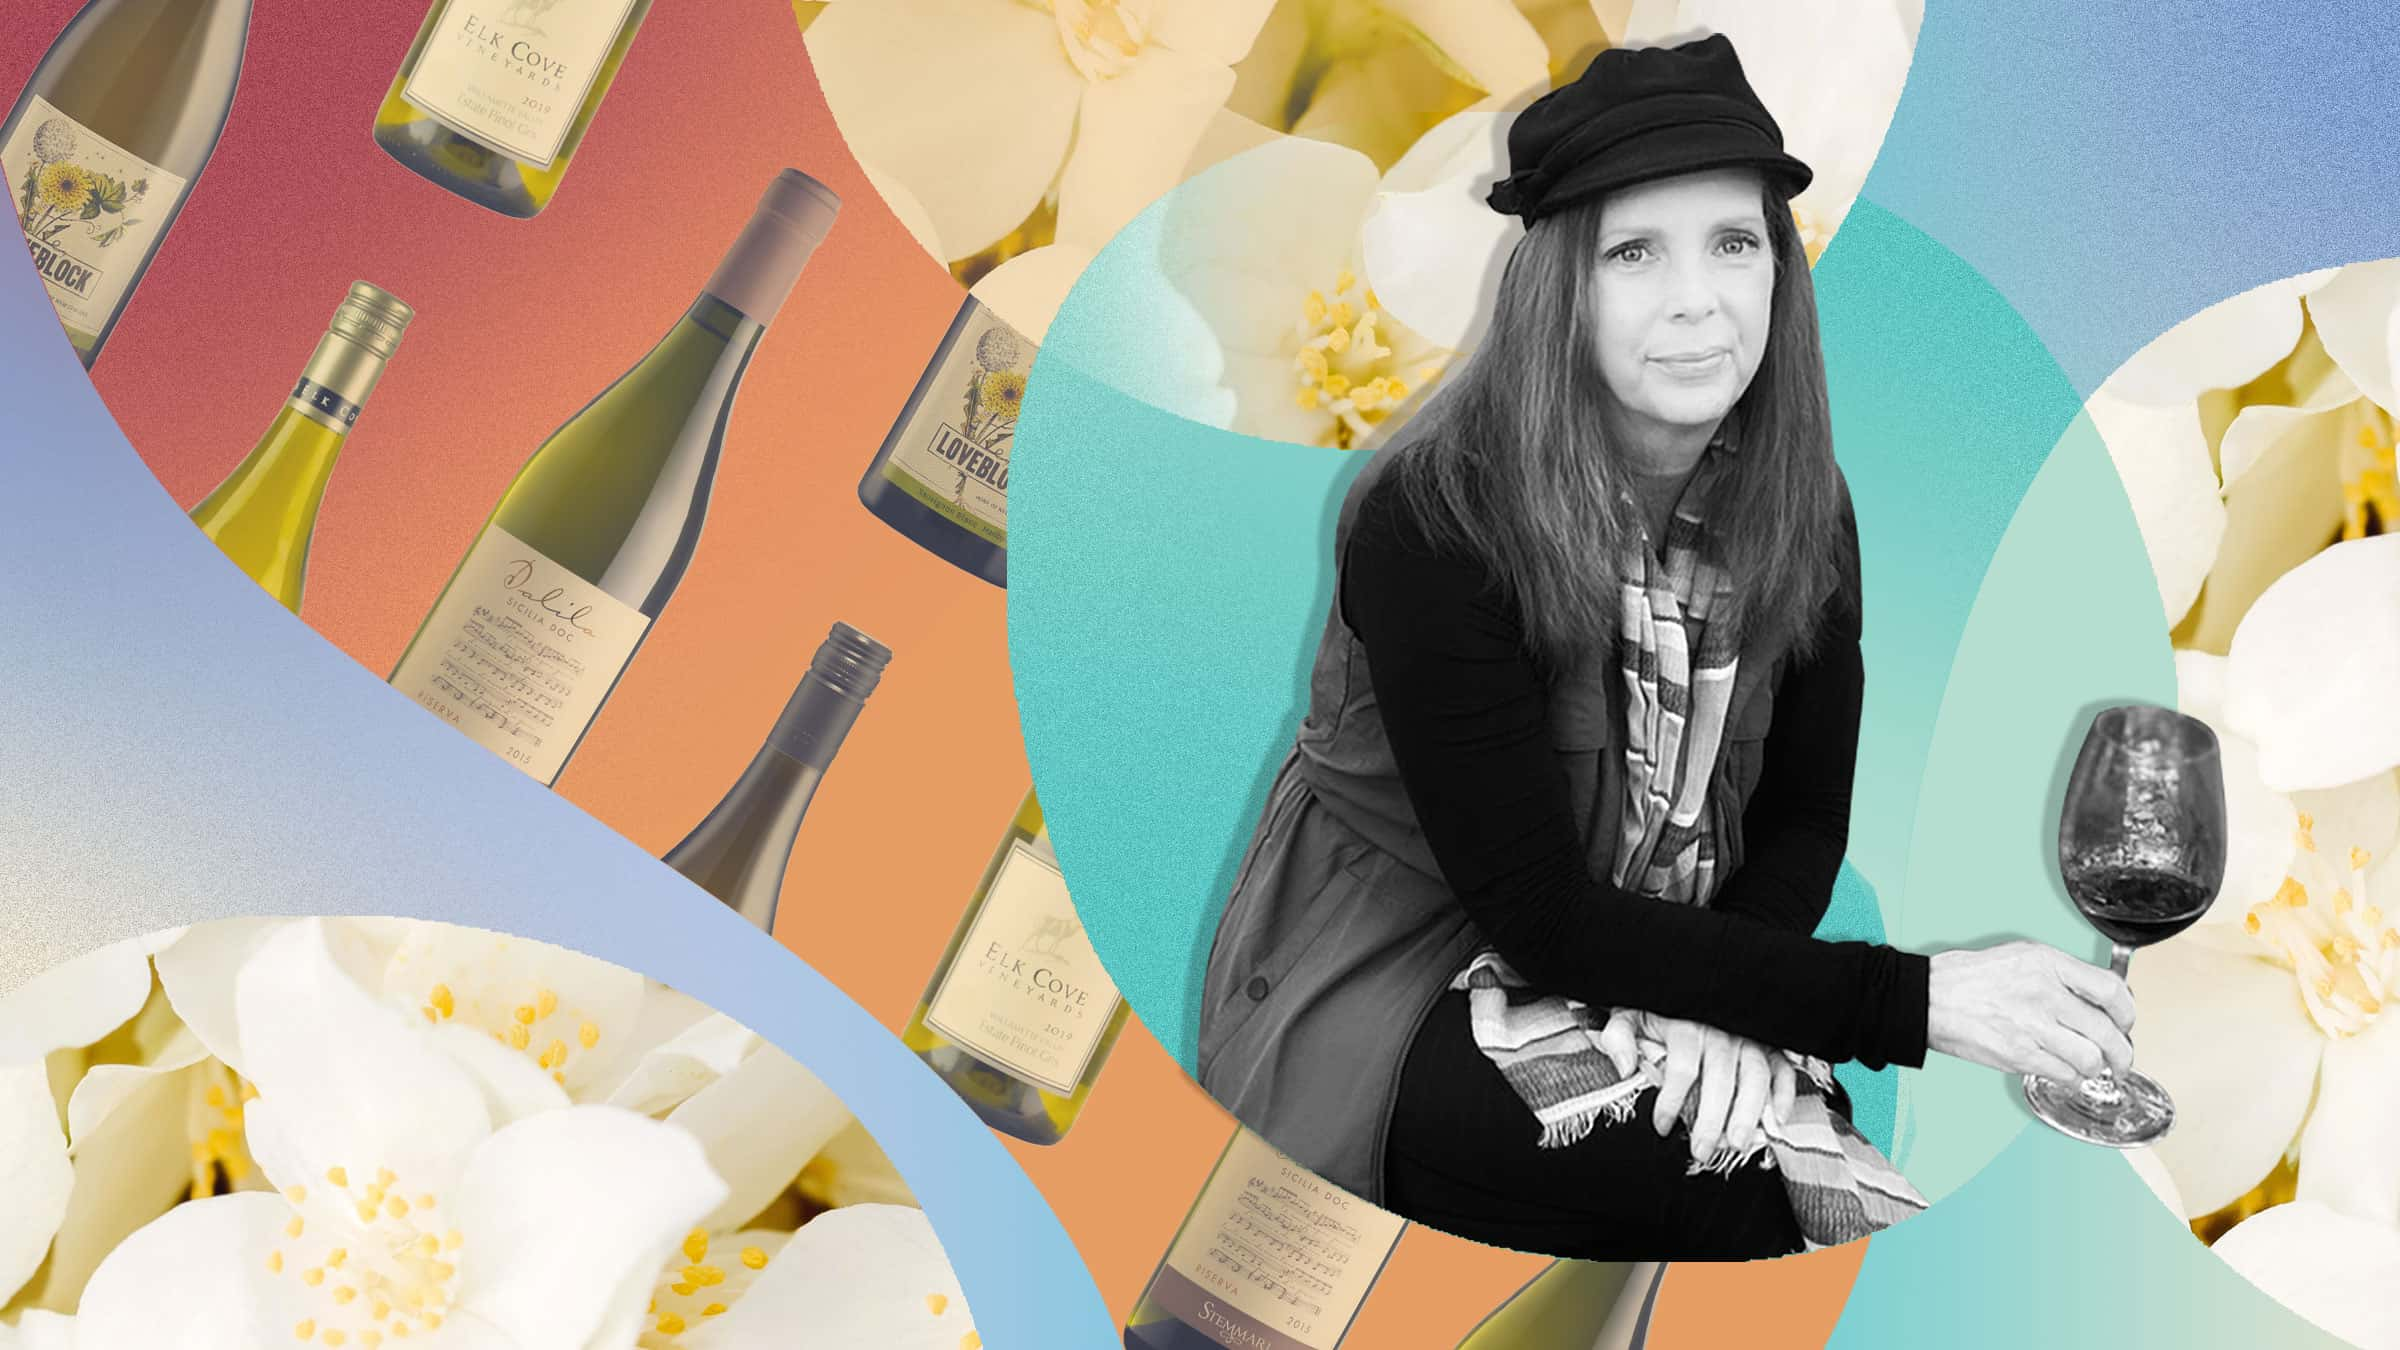 Photo illustration of wine communicator Penny Sadler with images of white flowers and wine bottles in the background.